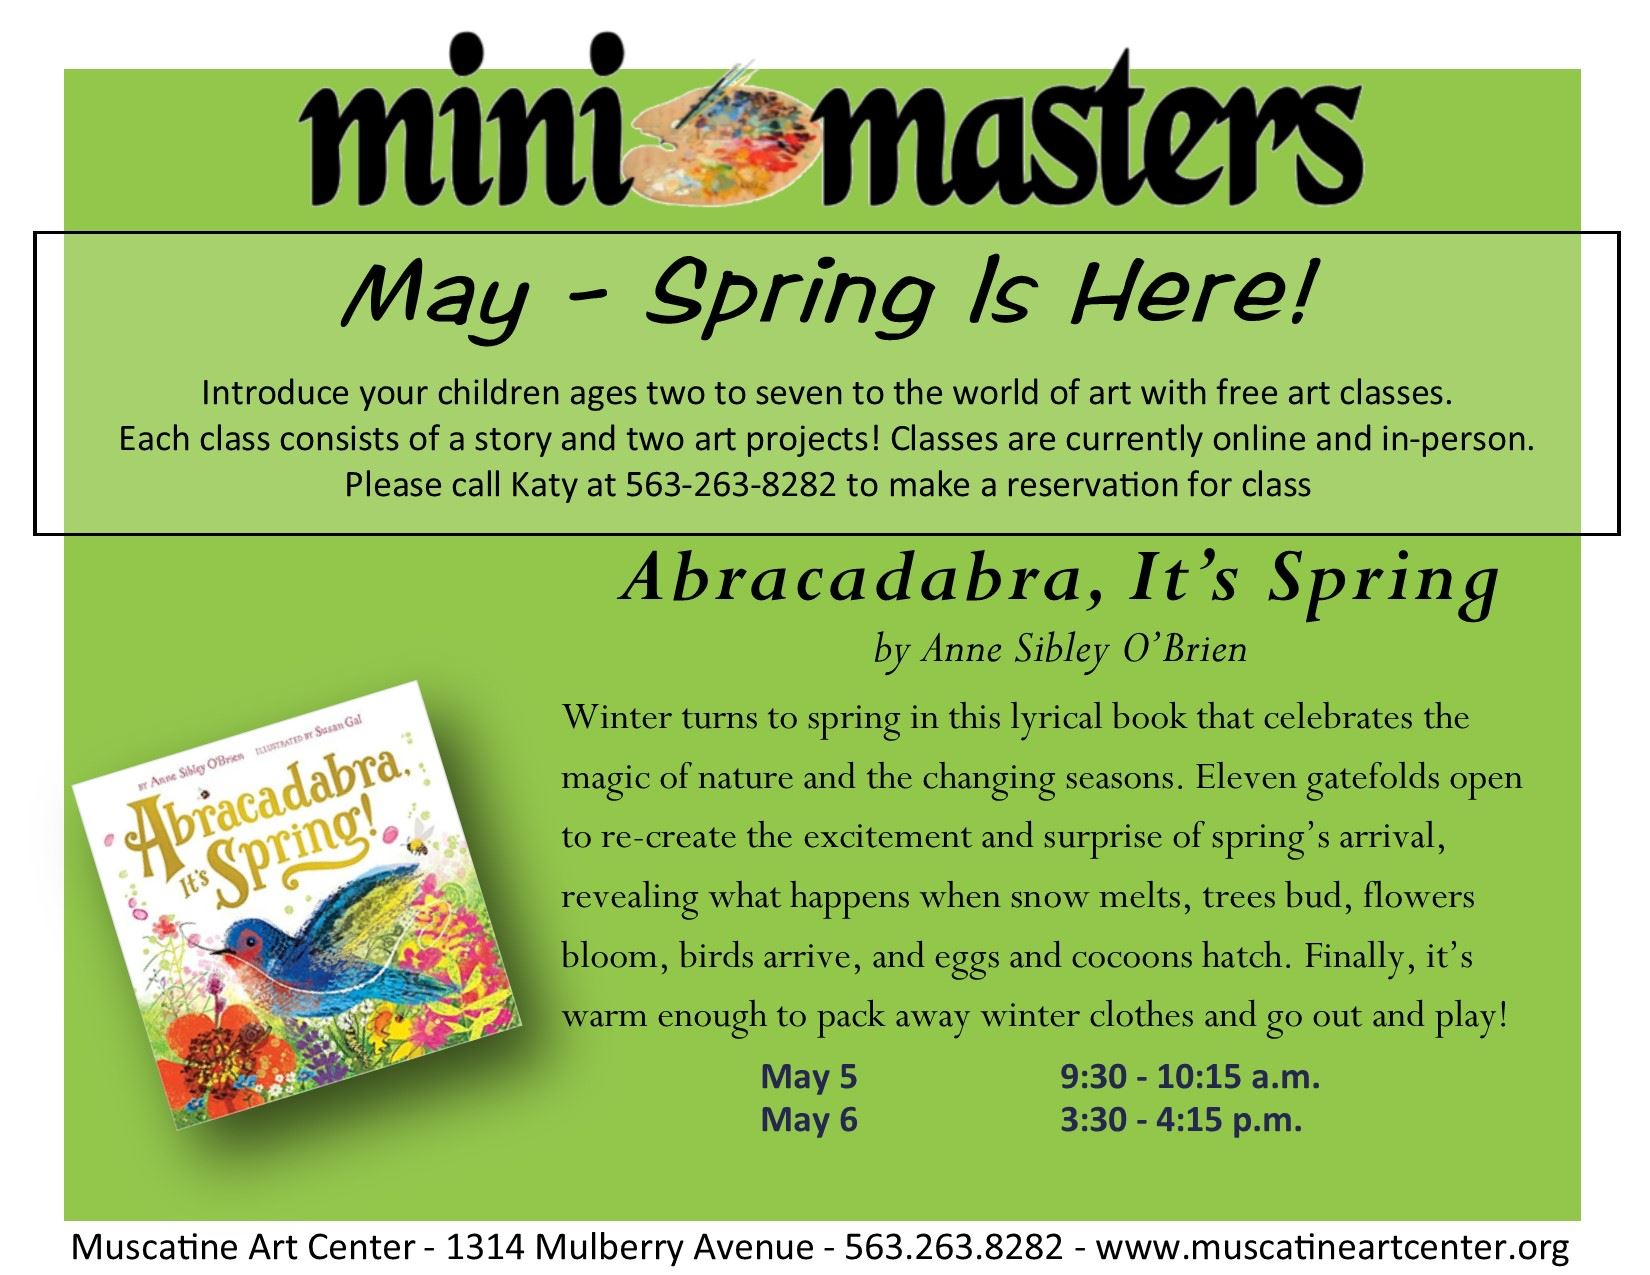 May 5-6 - Abracadabra, Its Spring - mini masters